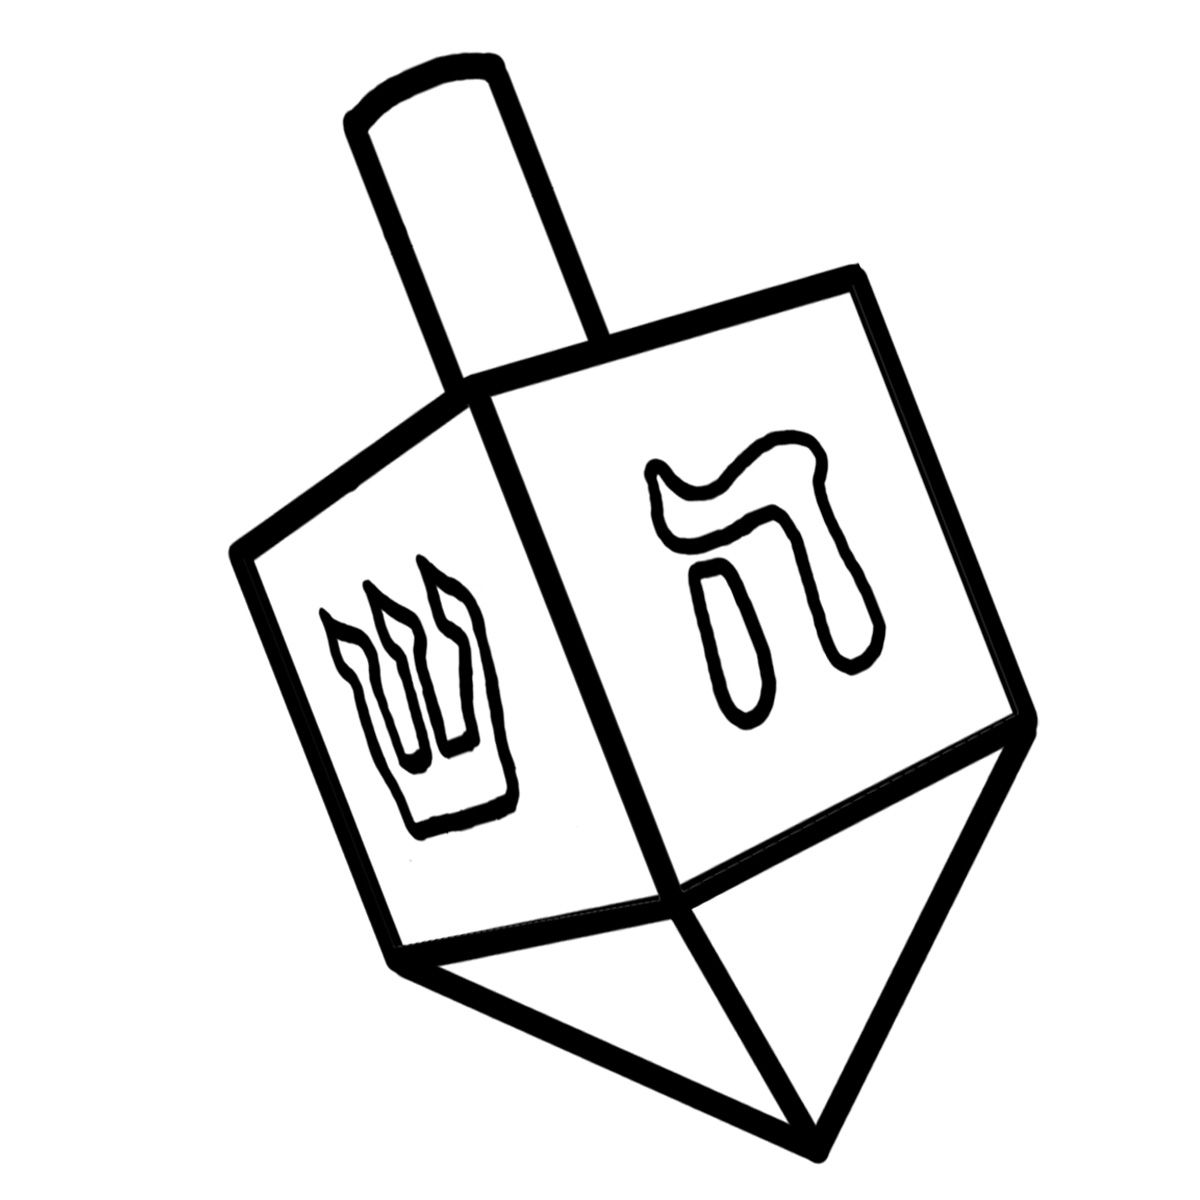 Dreidel clipart clip art transparent download Dreidel Drawing at GetDrawings.com | Free for personal use Dreidel ... clip art transparent download